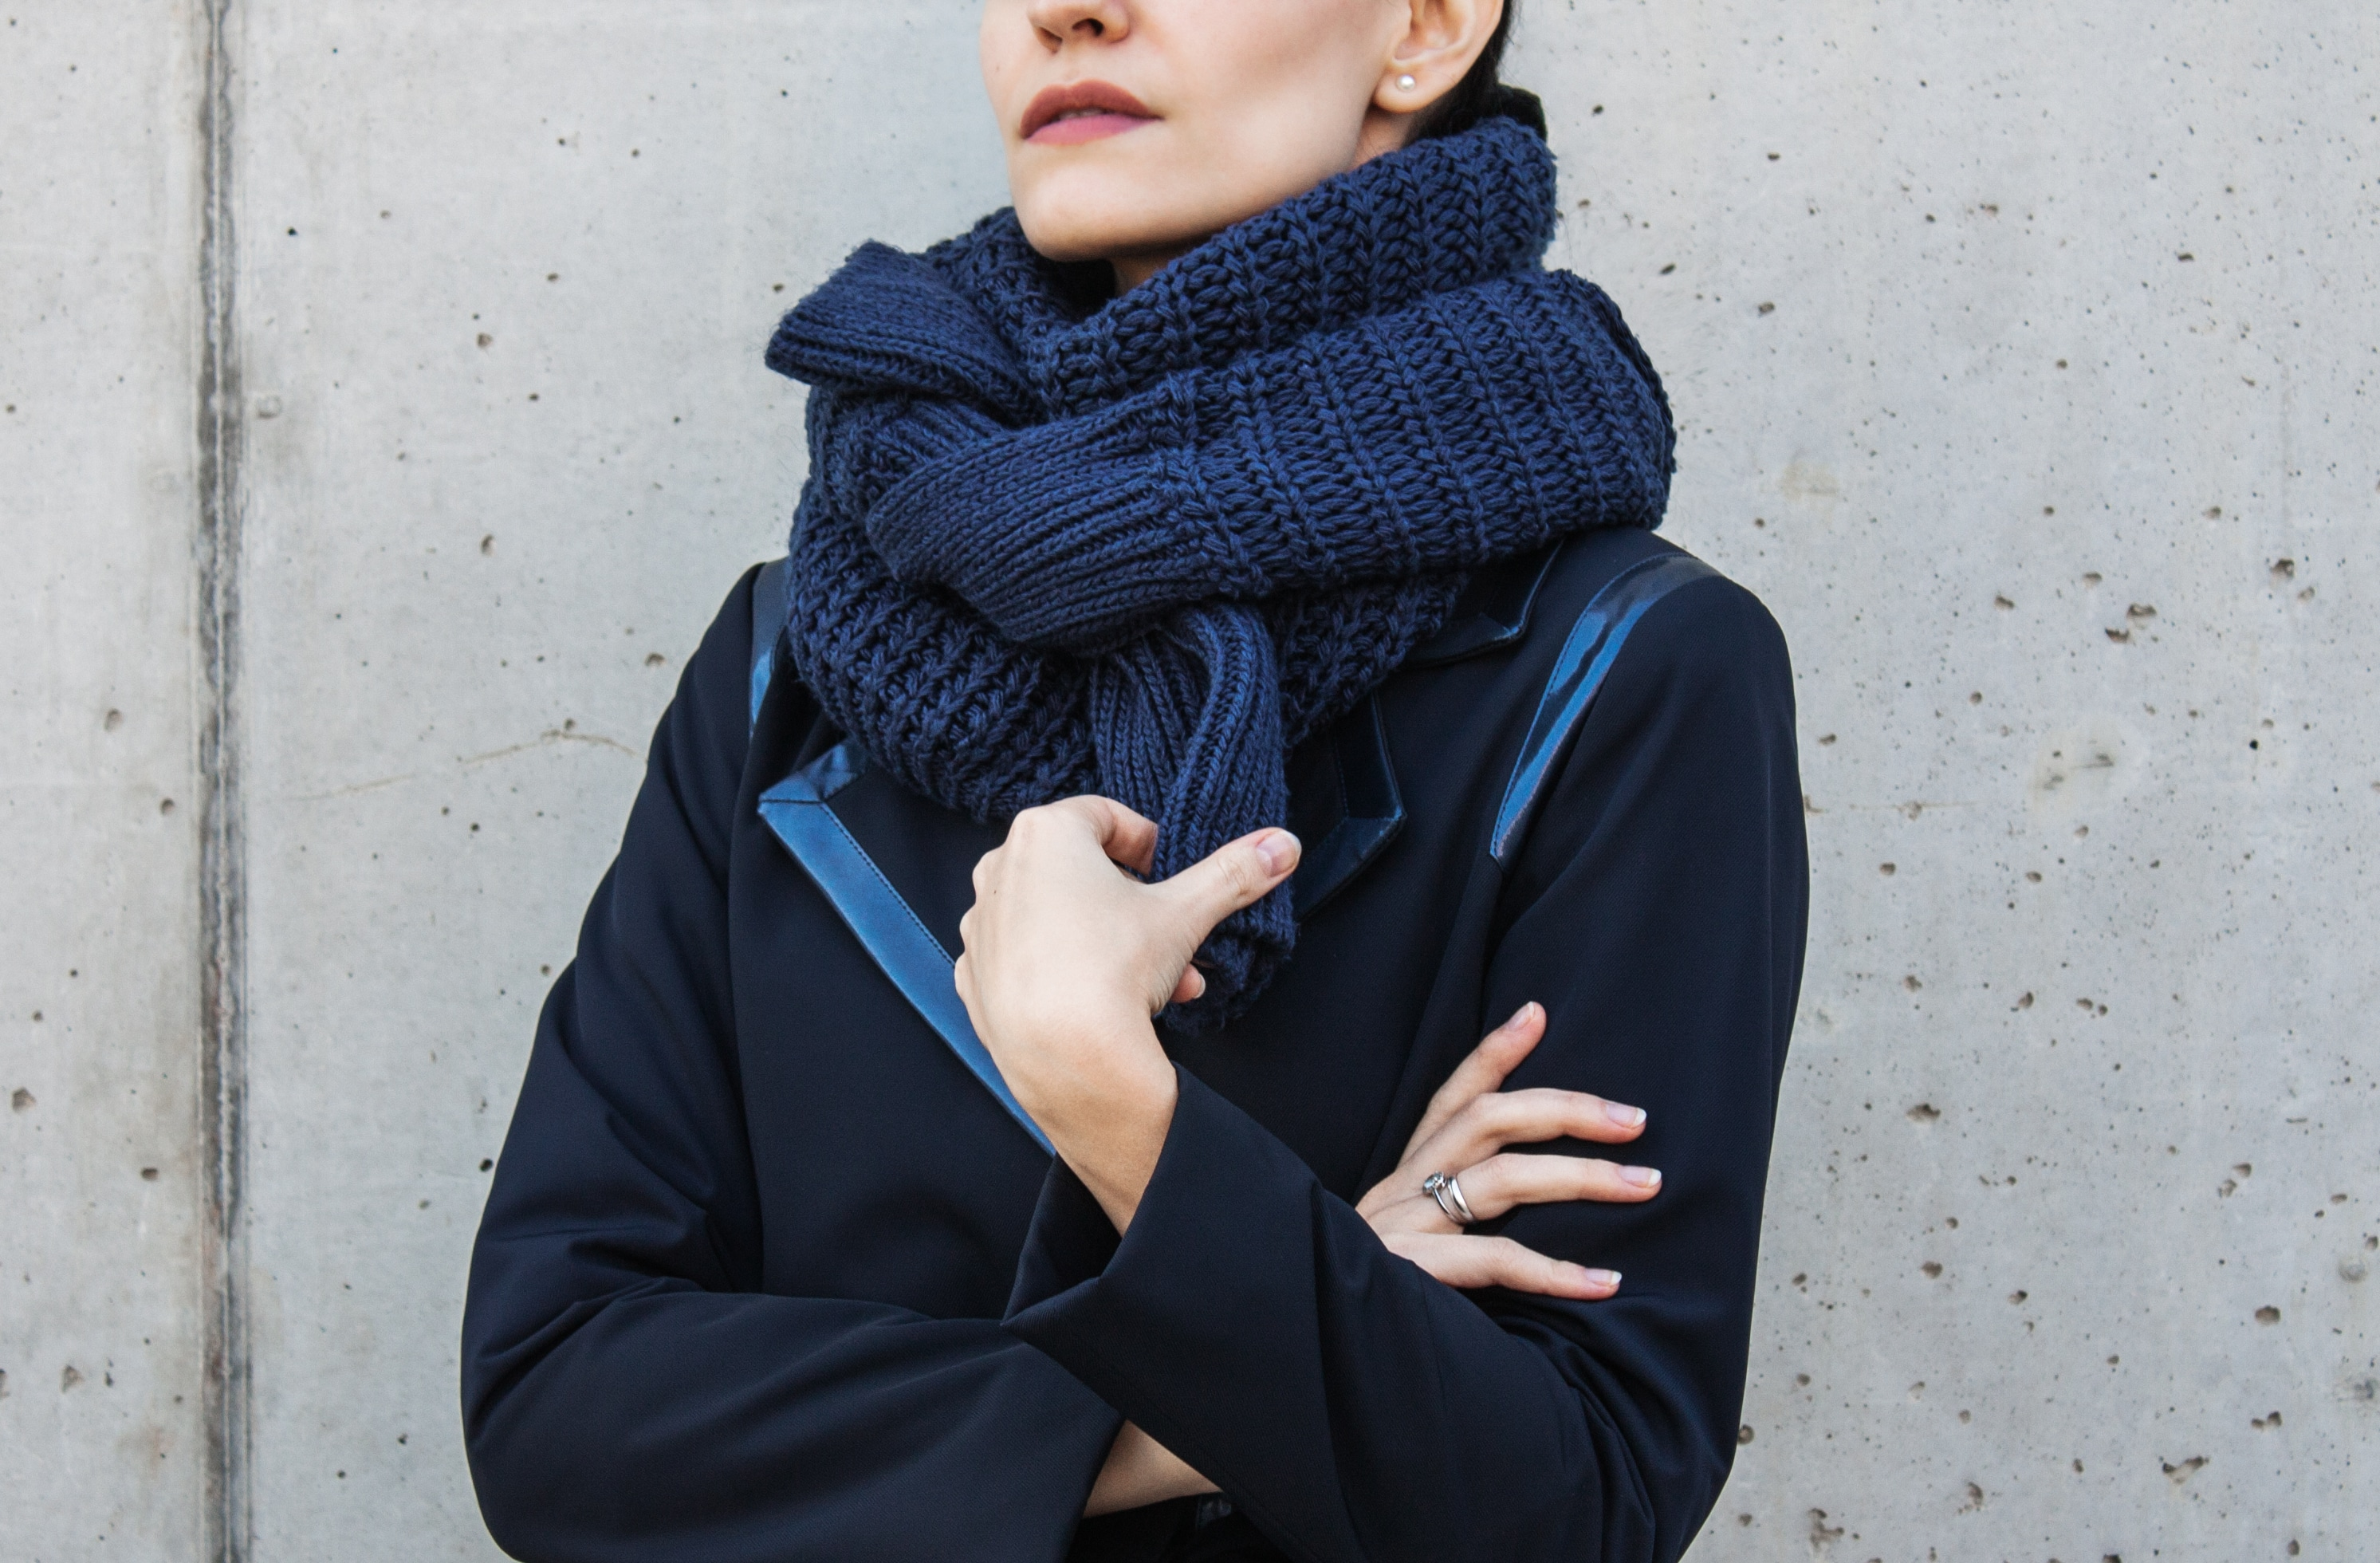 Elena Hilman with a DIY scarf out of a sweater